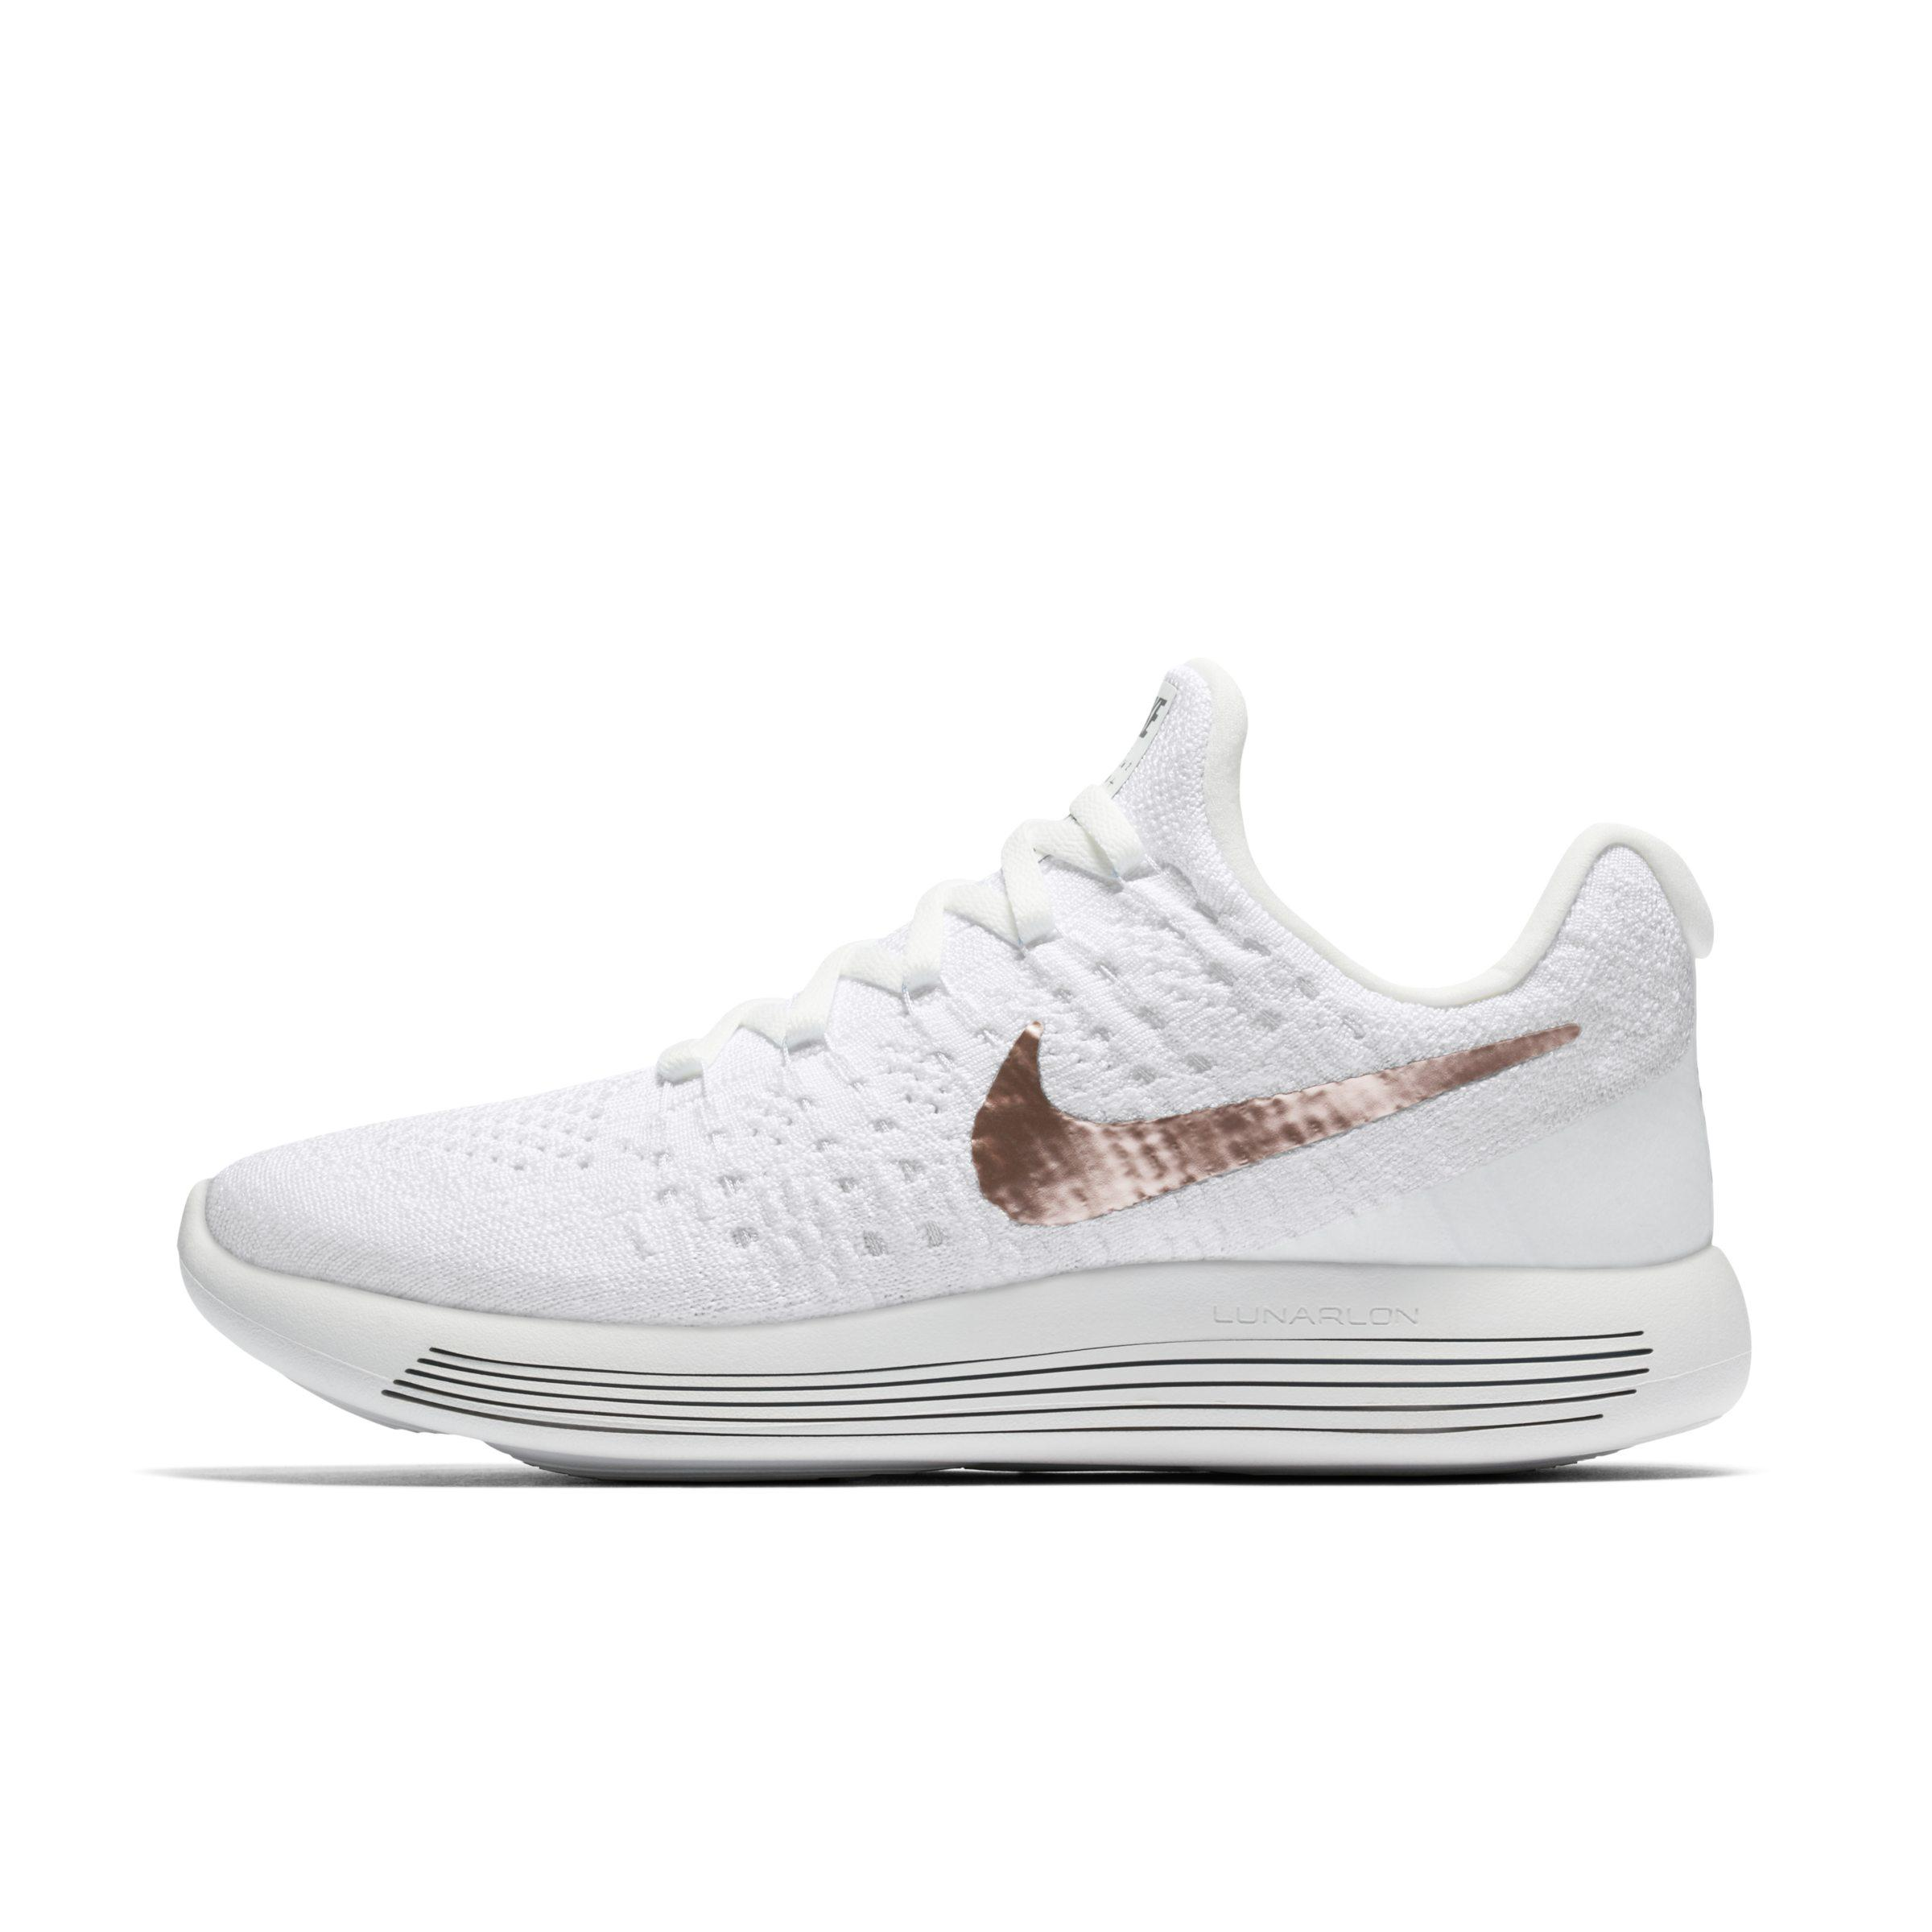 f85c9aa54454 Nike Lunarepic Low Flyknit 2 Explorer Running Shoe in White - Lyst